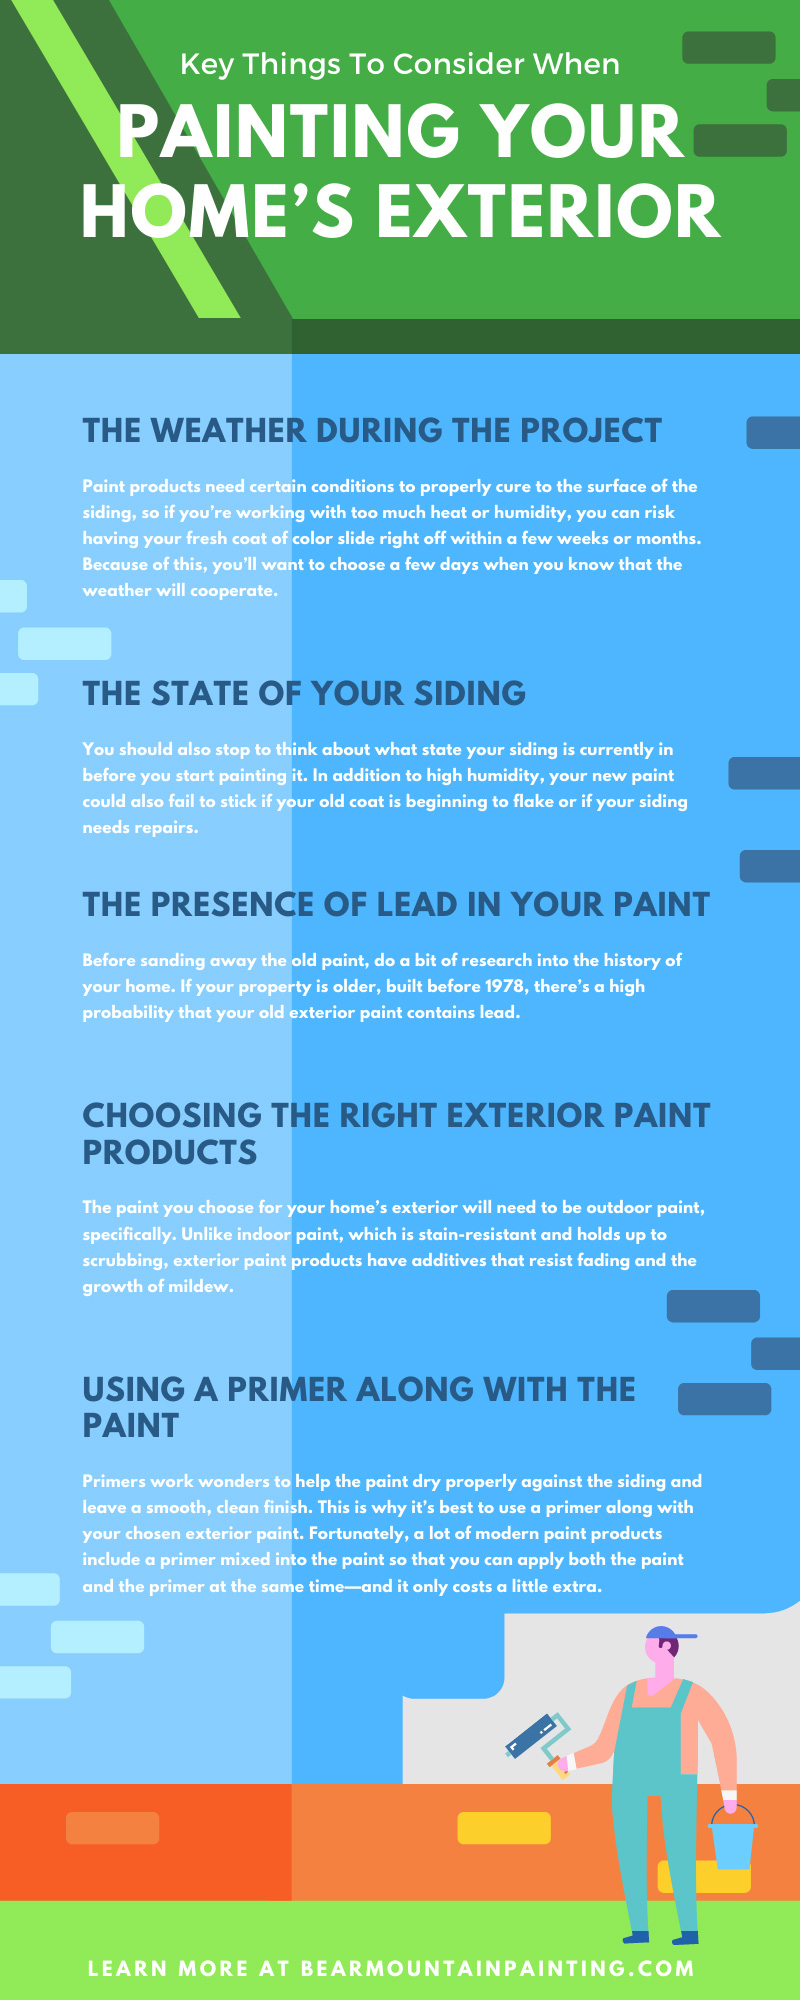 Key Things To Consider When Painting Your Home's Exterior